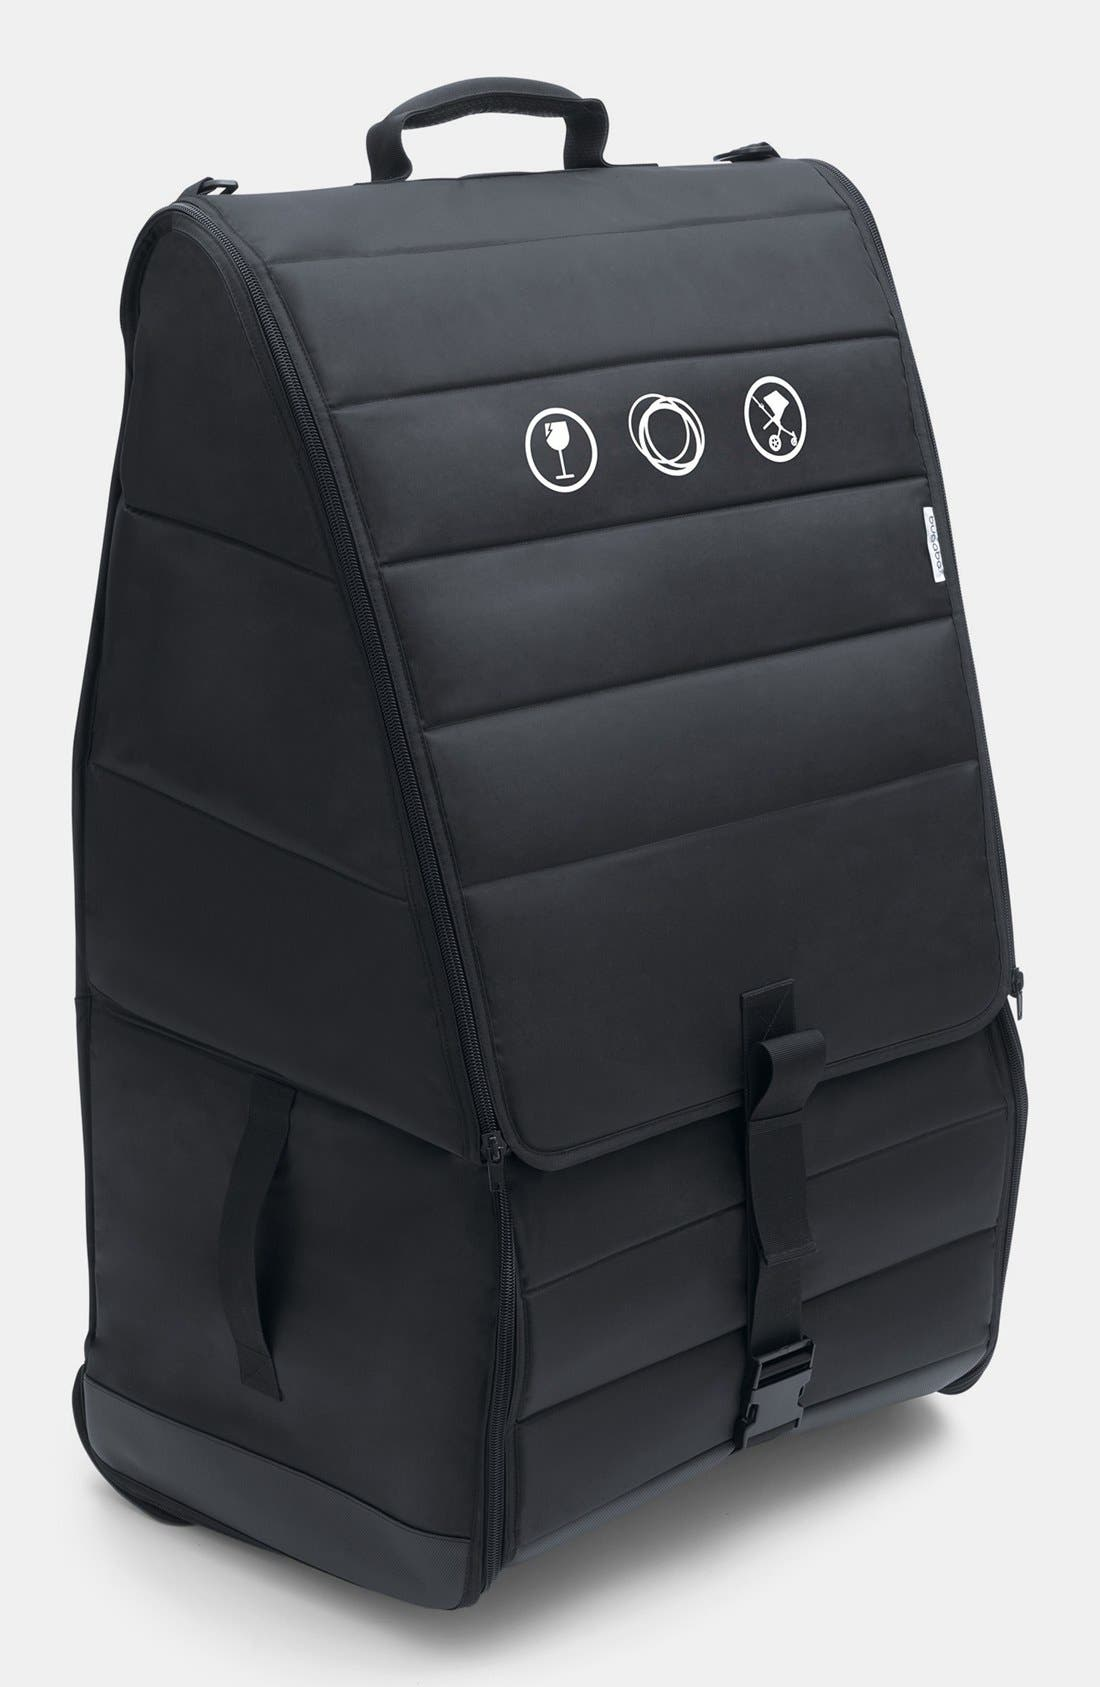 Alternate Image 1 Selected - Bugaboo Comfort Stroller Transport Bag